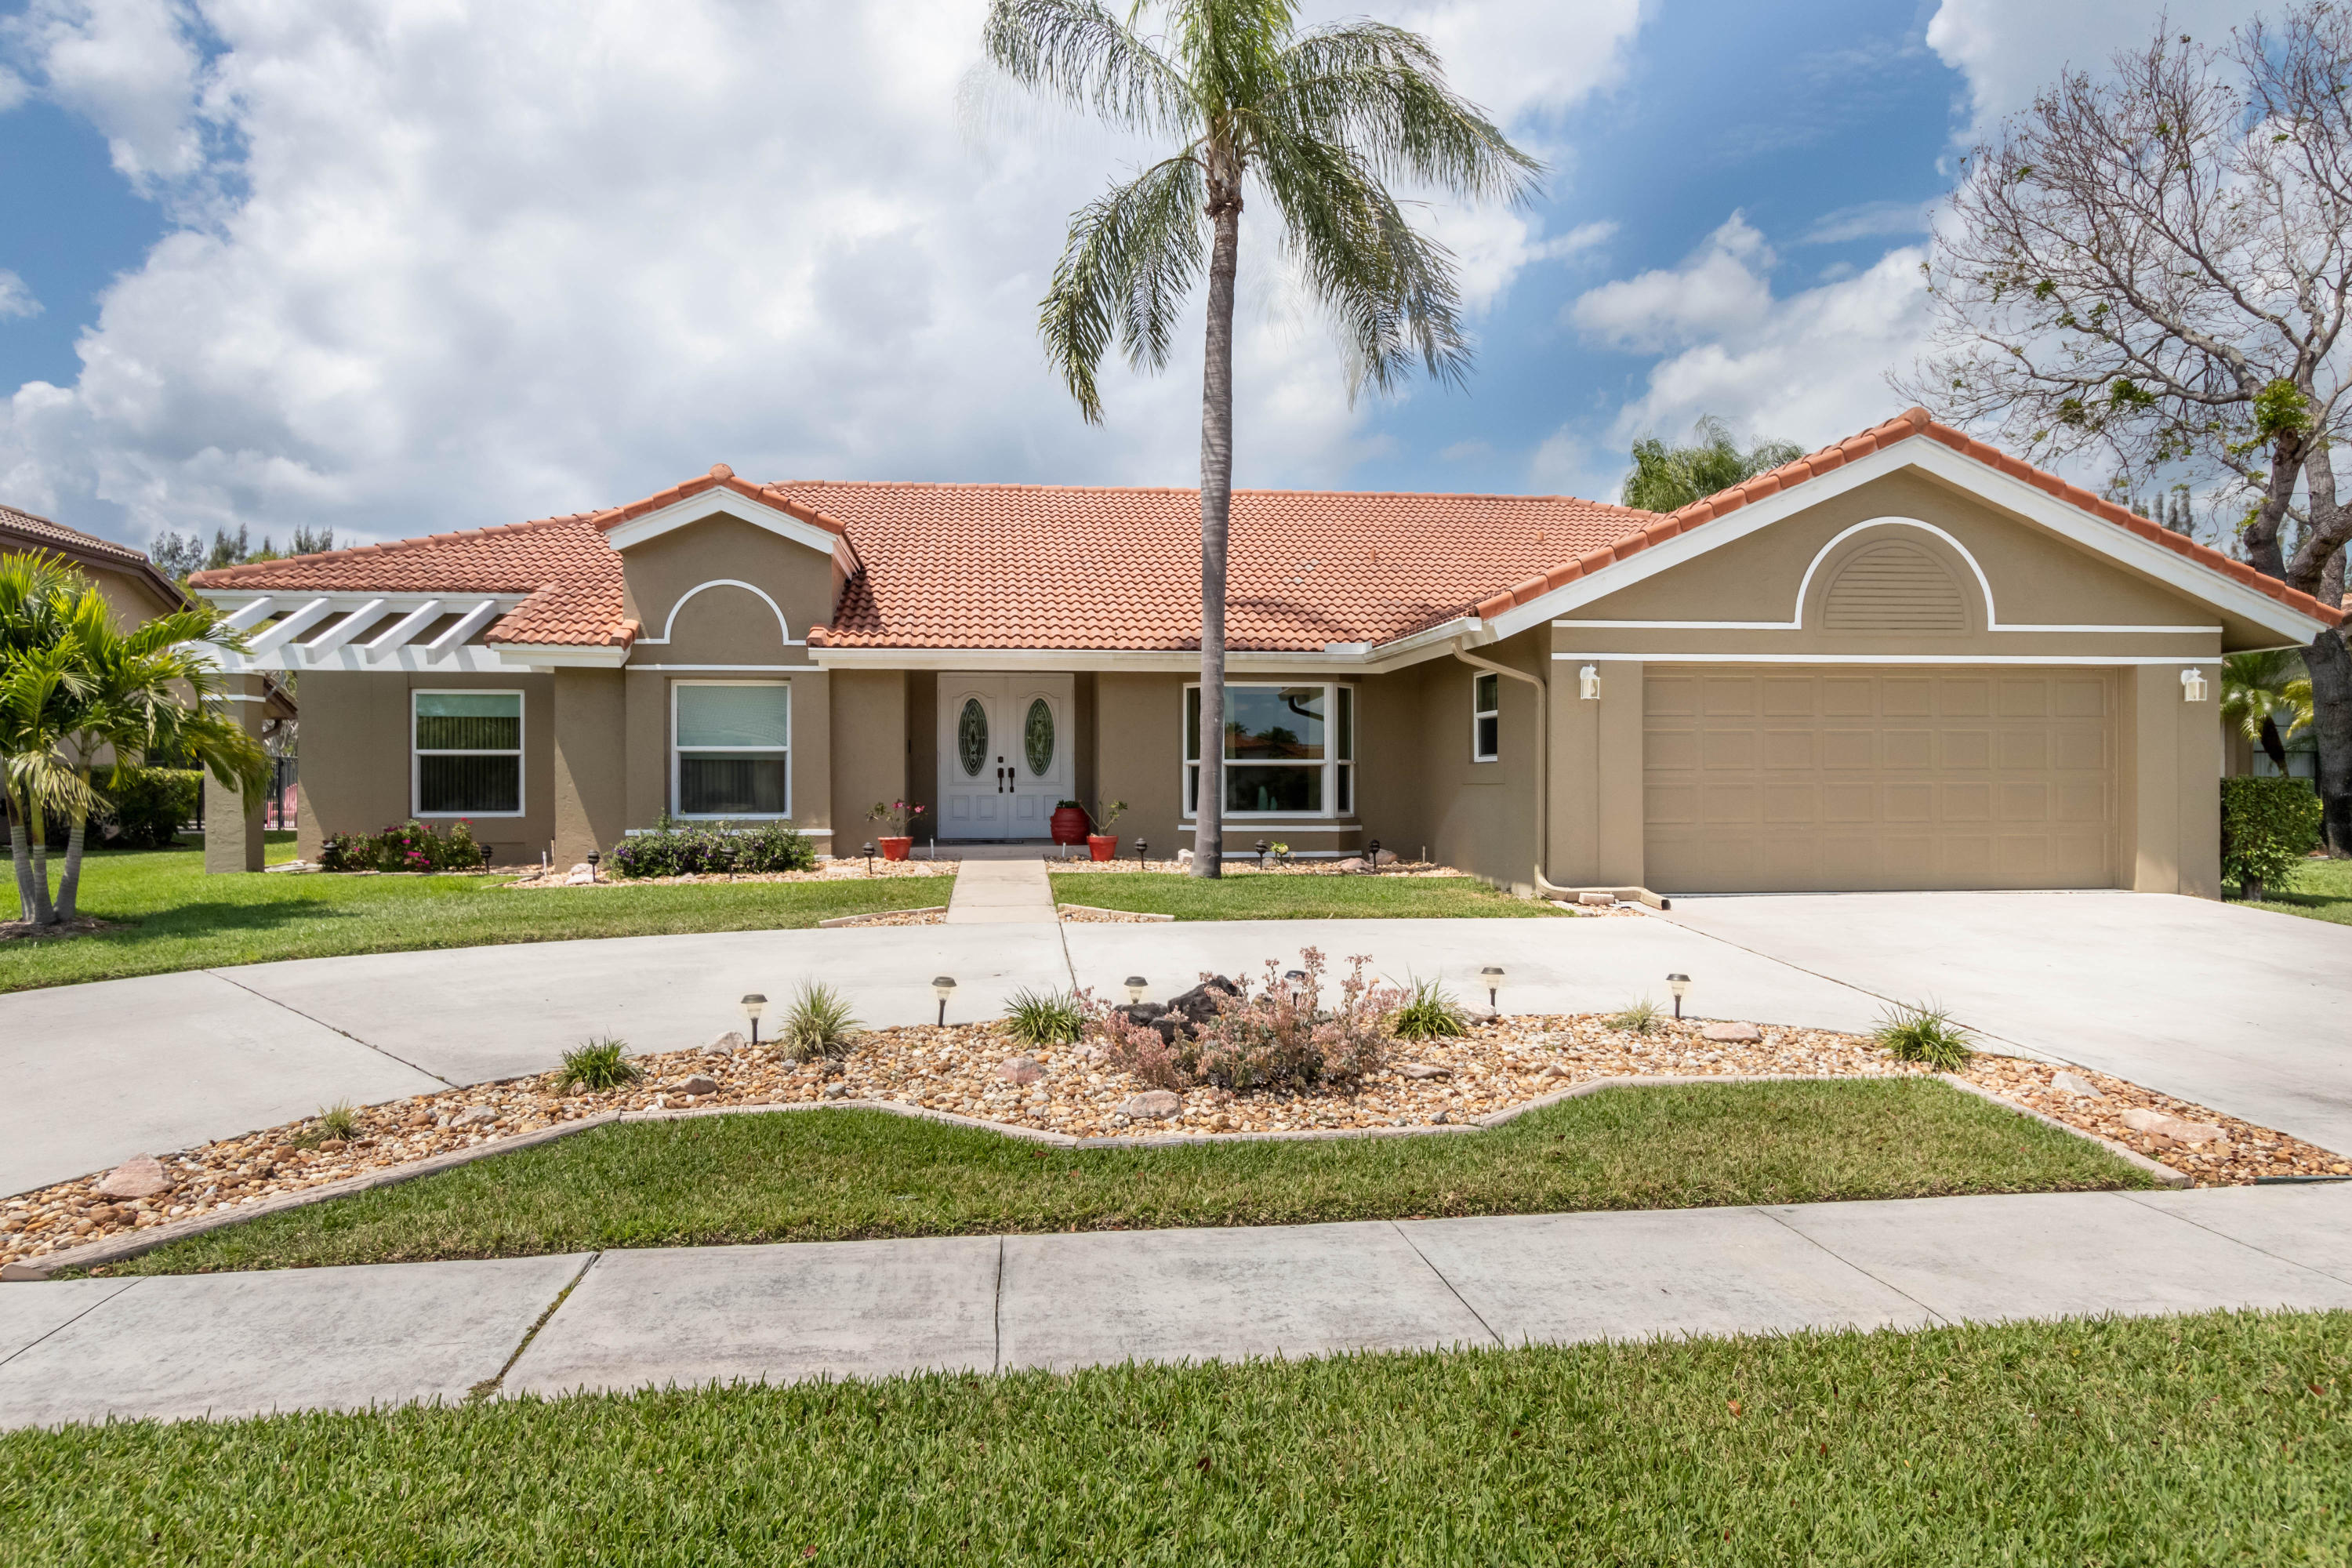 Home for sale in Loggers Run,island Lakes Boca Raton Florida